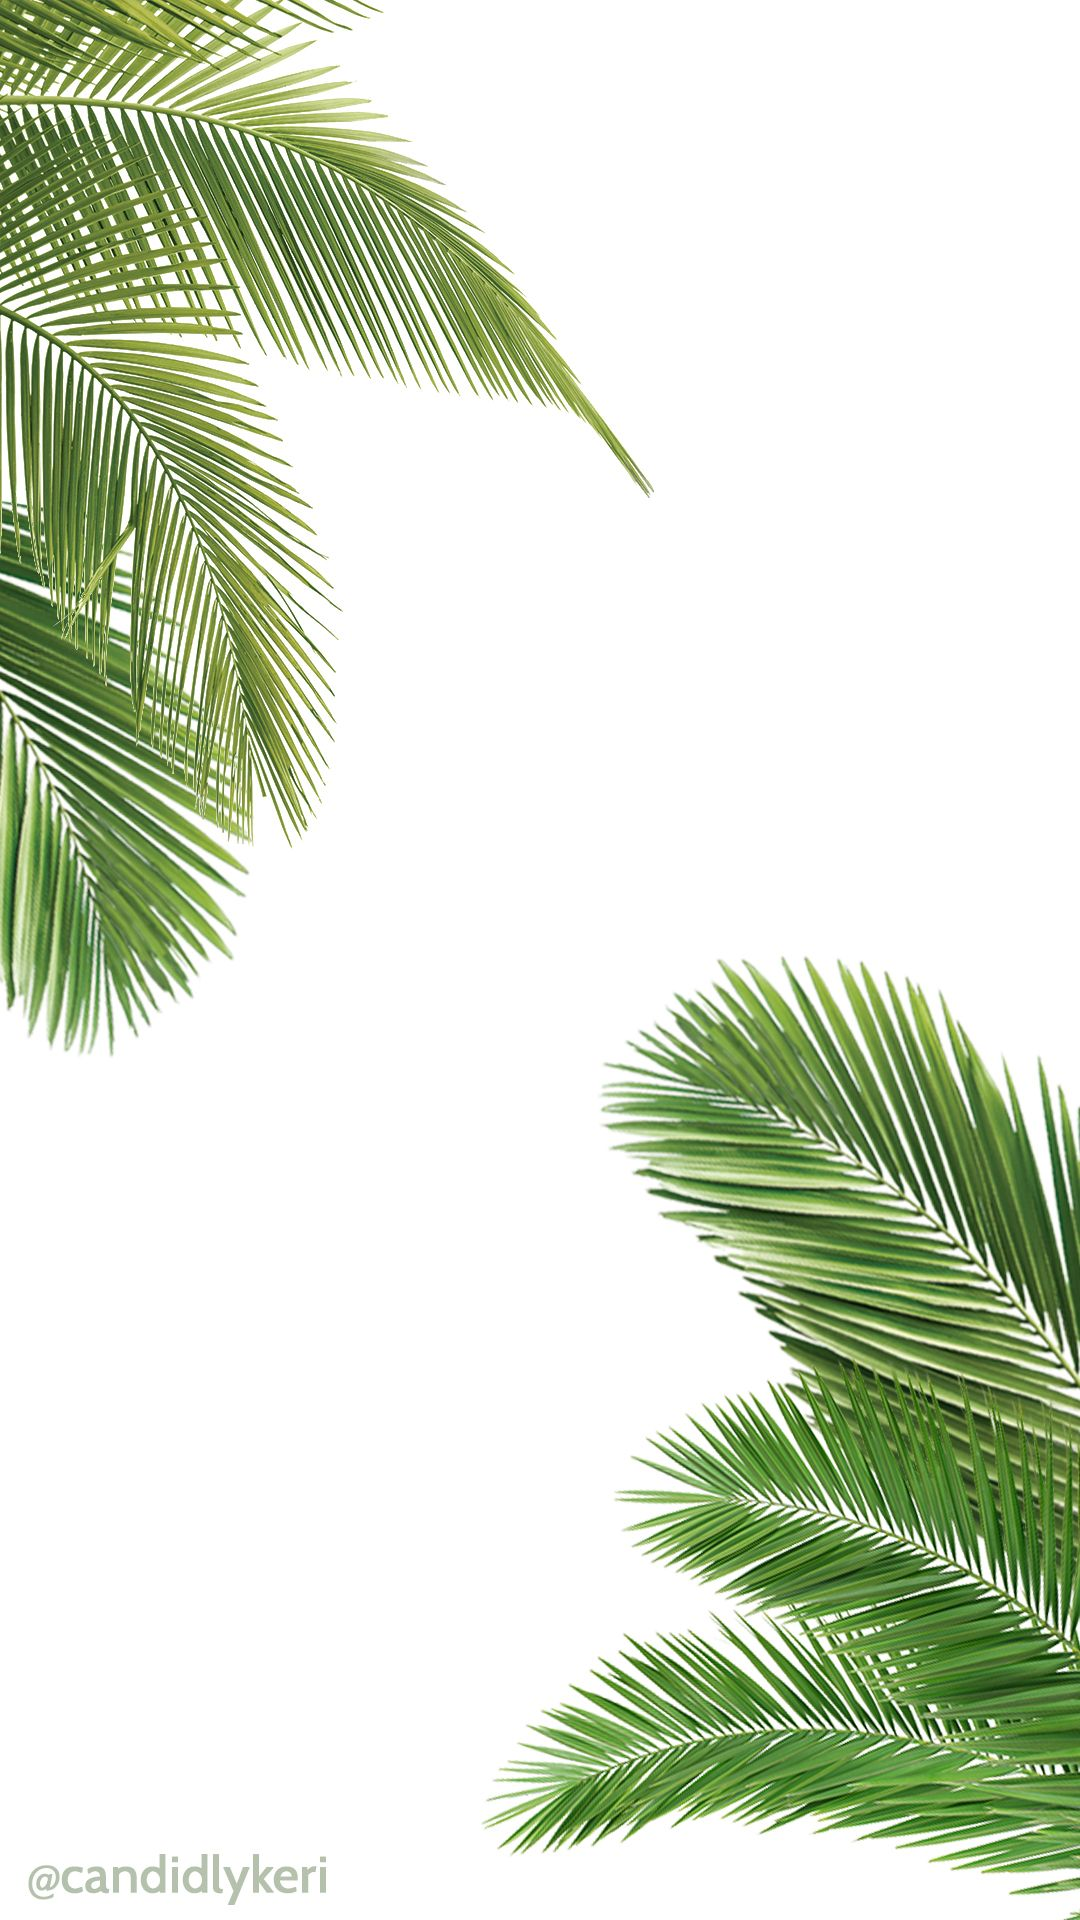 Palm tree wallpapers 1080p hupages download iphone wallpapers templates - Palm tree wallpaper for android ...